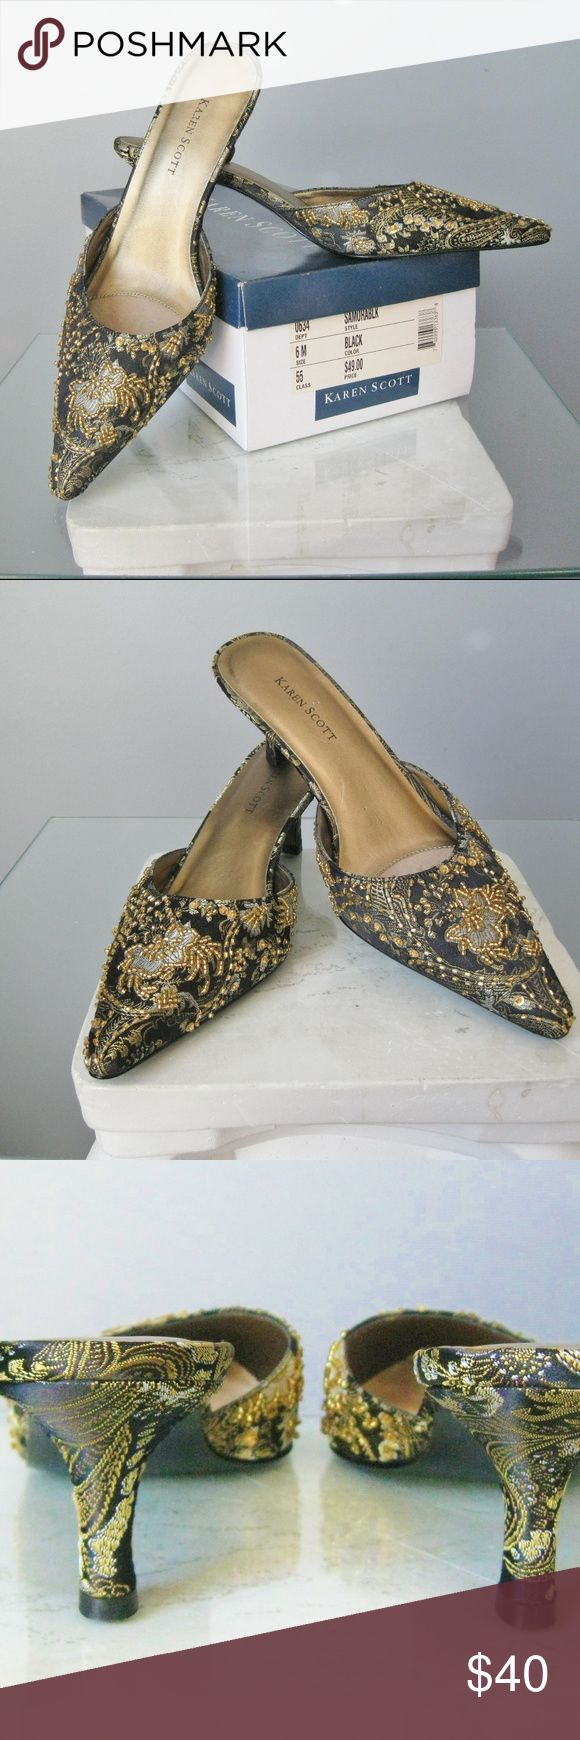 """Karen Scott Samora Black & Gold Brocade Mules NEW Elegant floral beaded Leather brocade mules new in box black and gold with gold beading. Heel: 2.5"""" Thanks for looking! #22496 Karen Scott Shoes Mules & Clogs"""